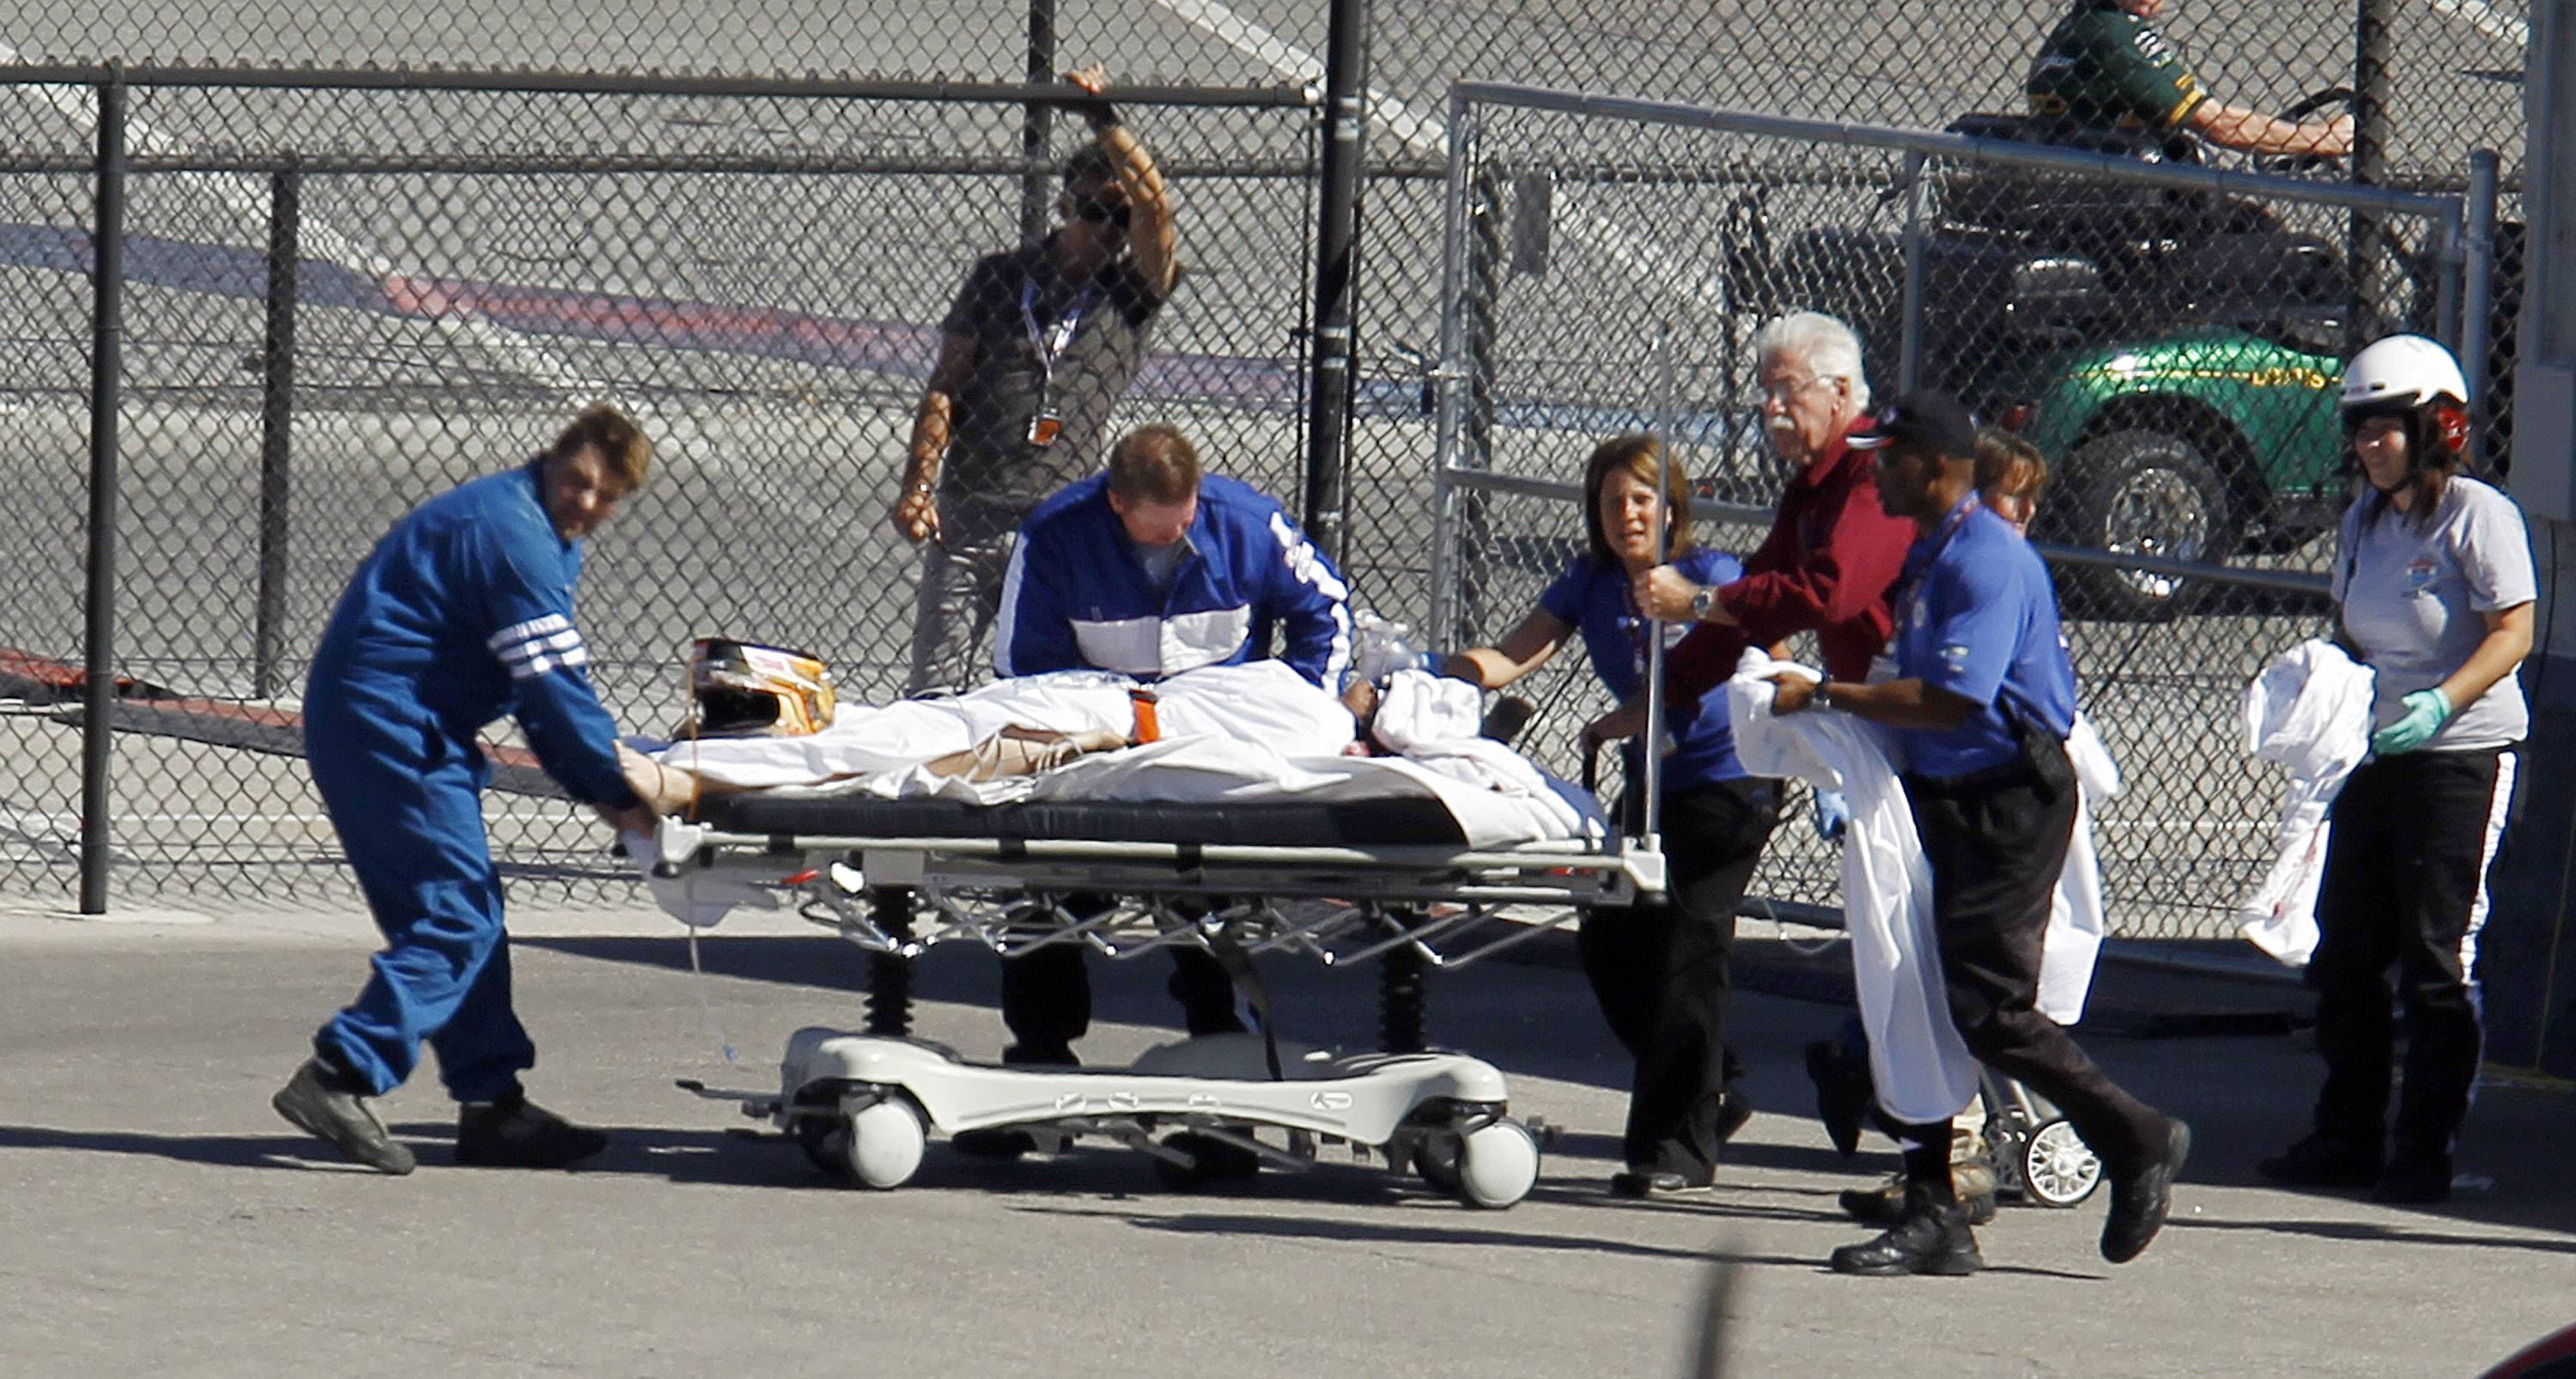 Dan Wheldon of England  is taken to a medical helicopter Sunday after a crash early in the IndyCar Series' Las Vegas Indy 300. Wheldon later died.